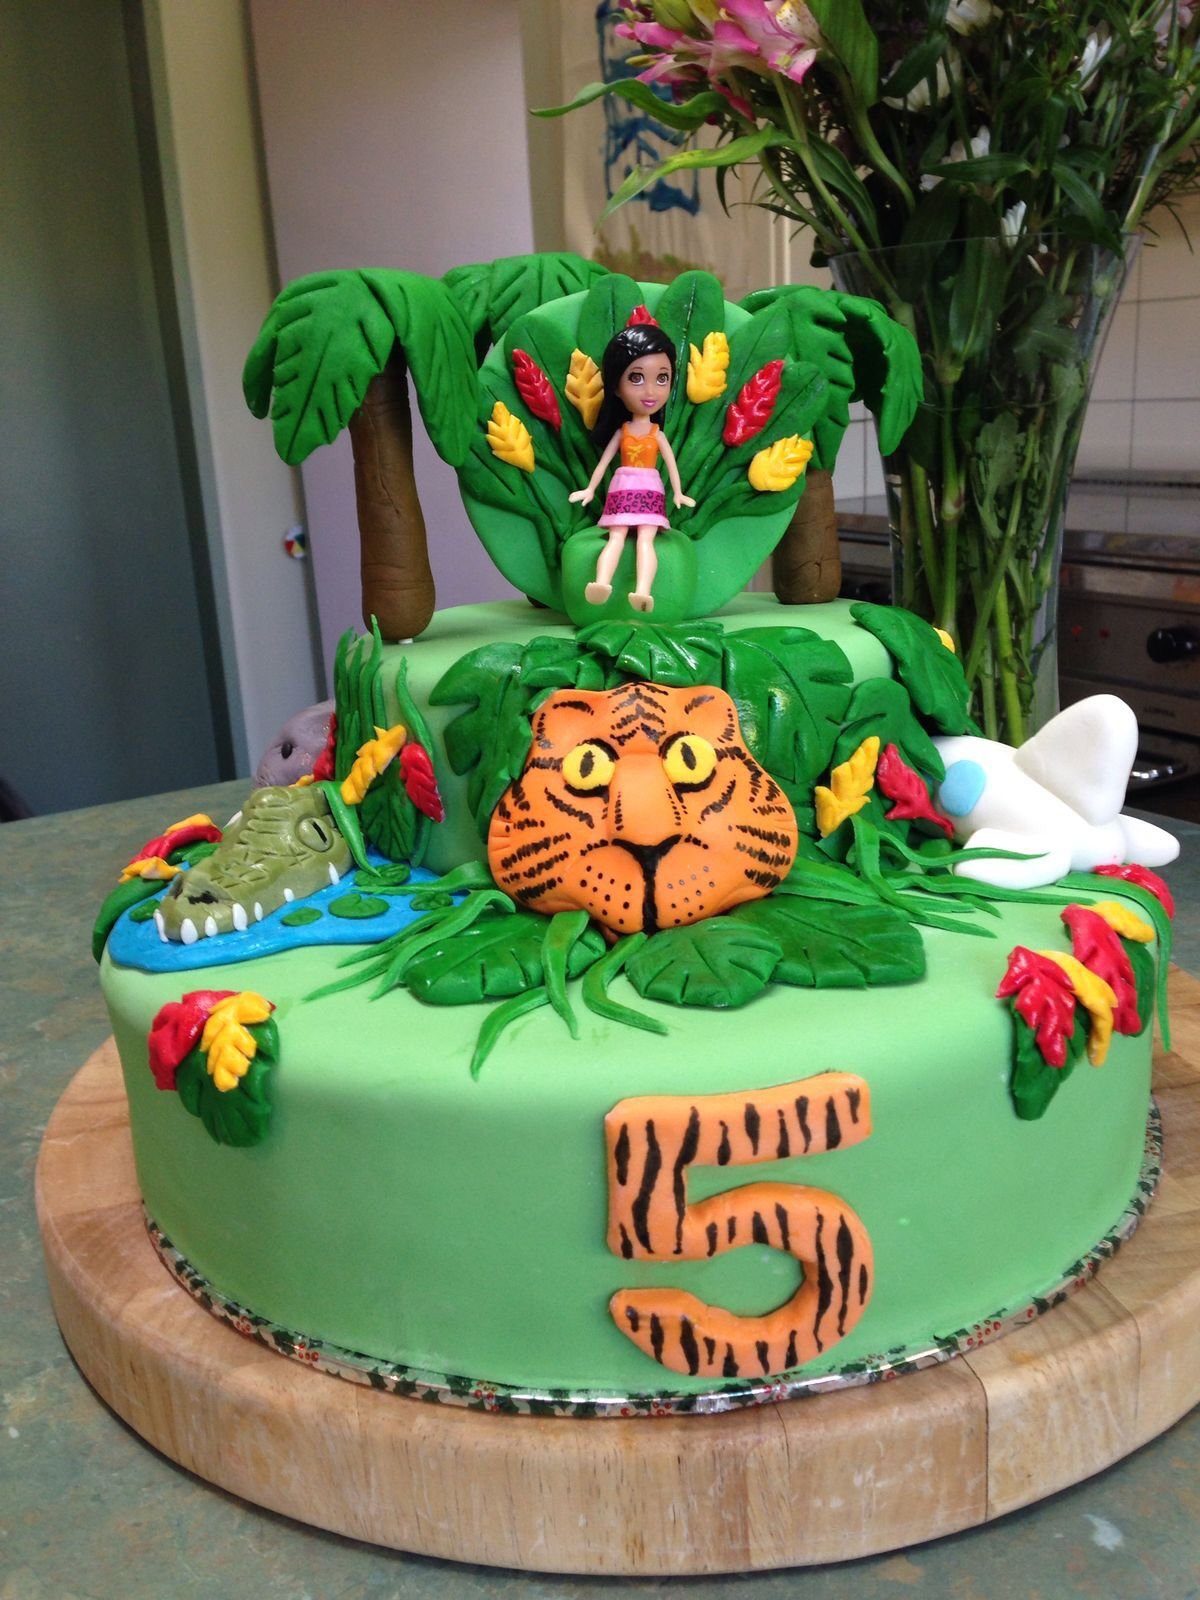 Surprising Katy Perry Roar Cake To Birthday With Images Katy Perry Personalised Birthday Cards Veneteletsinfo